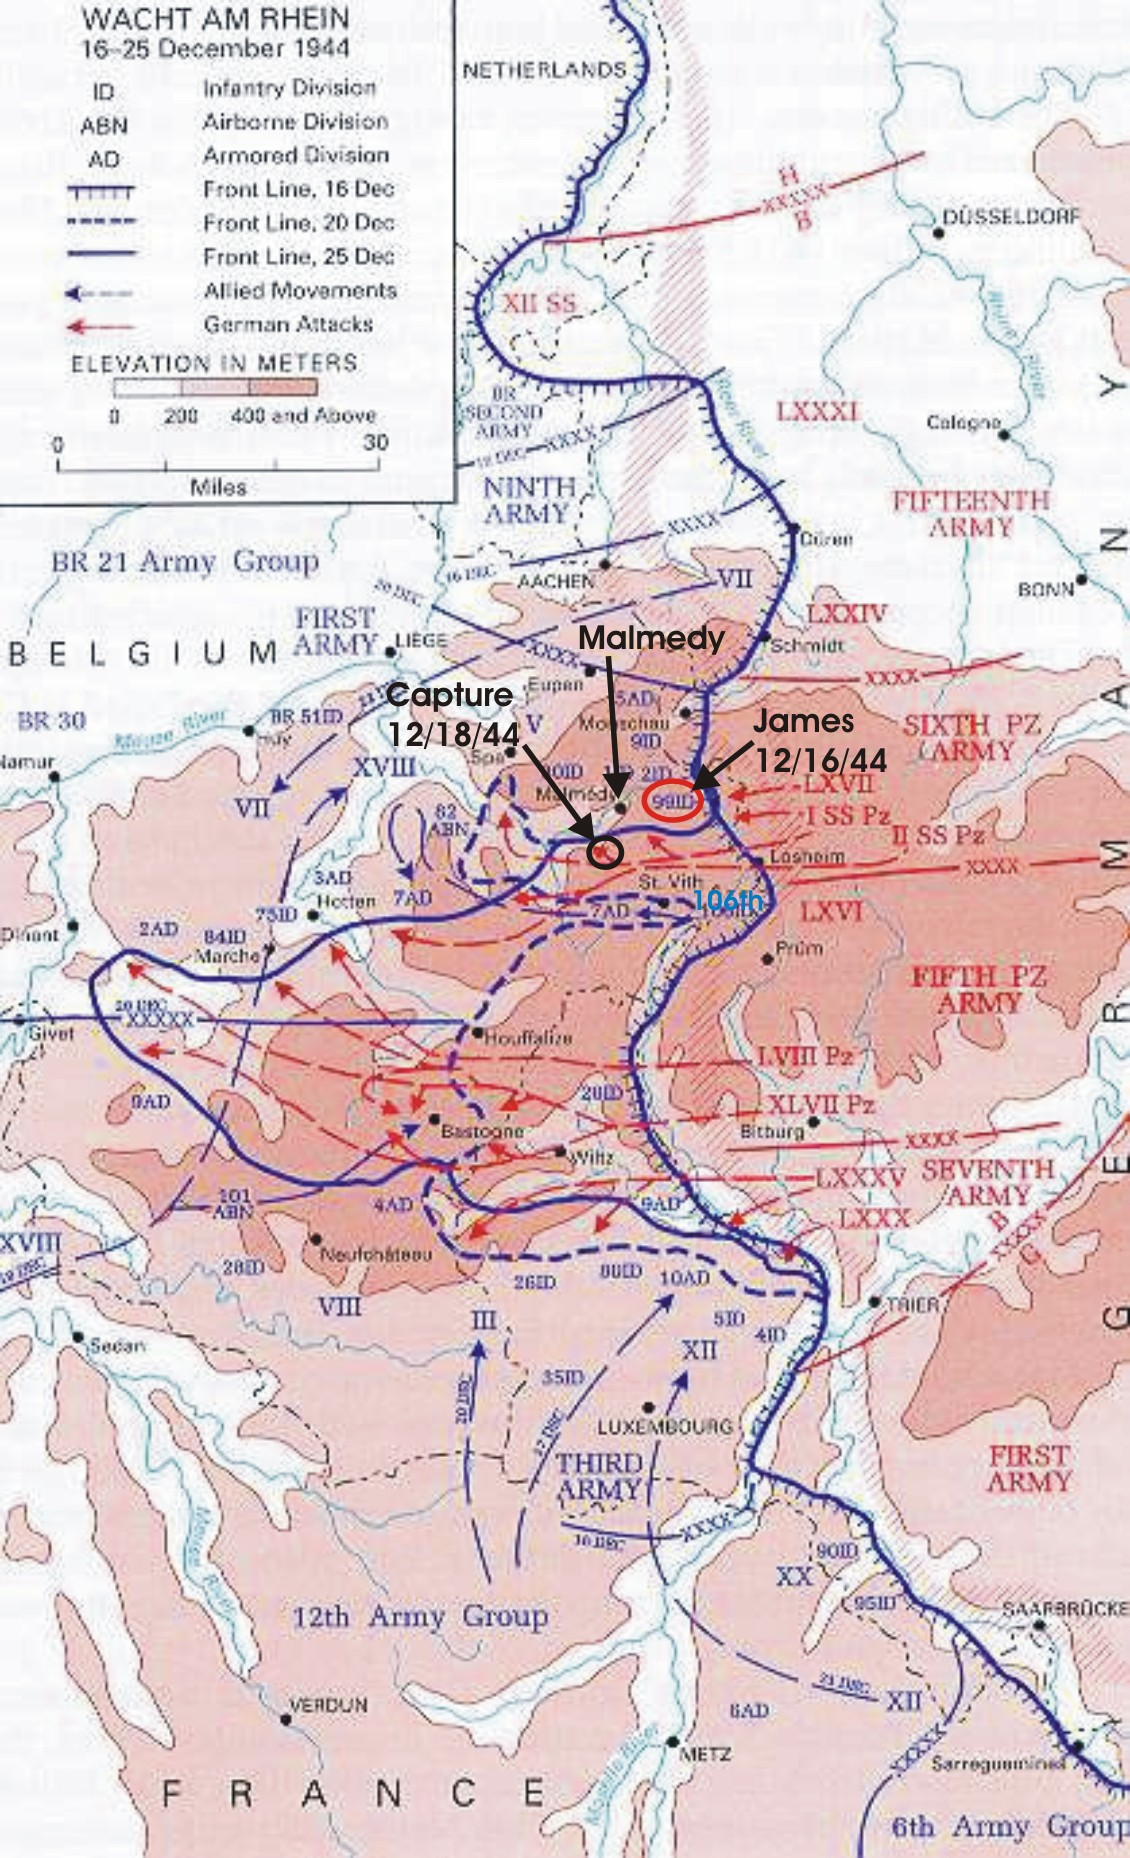 Map of the Battle of the Bulge, 16-25 December, 1944